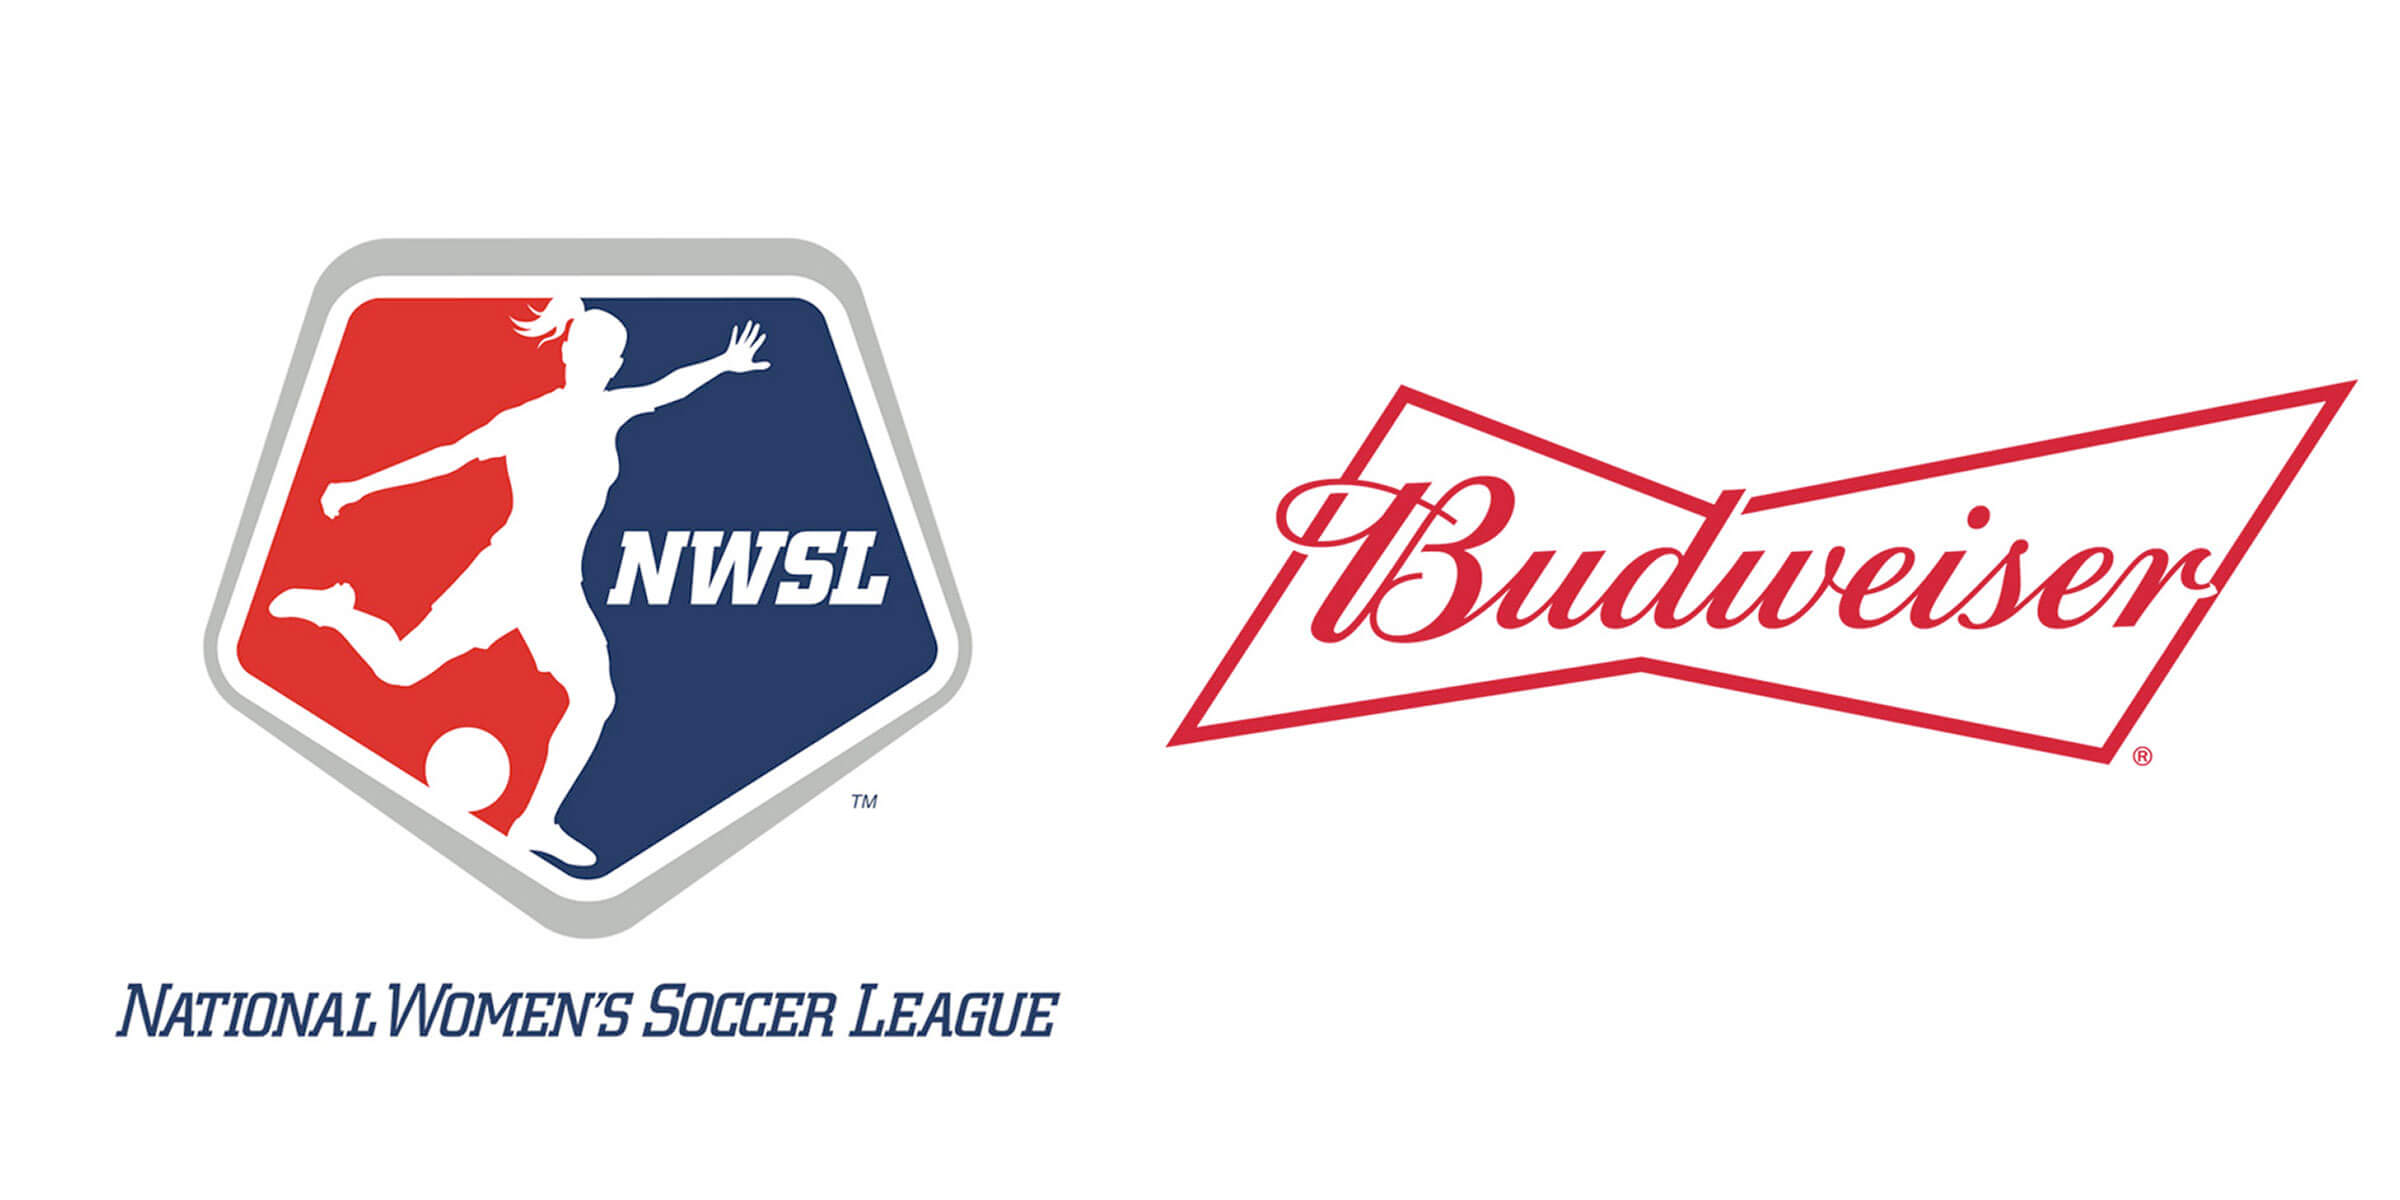 """Anheuser-Busch announced a multi-year deal to make Budweiser the """"first official beer sponsor"""" of the National Women's Soccer League."""